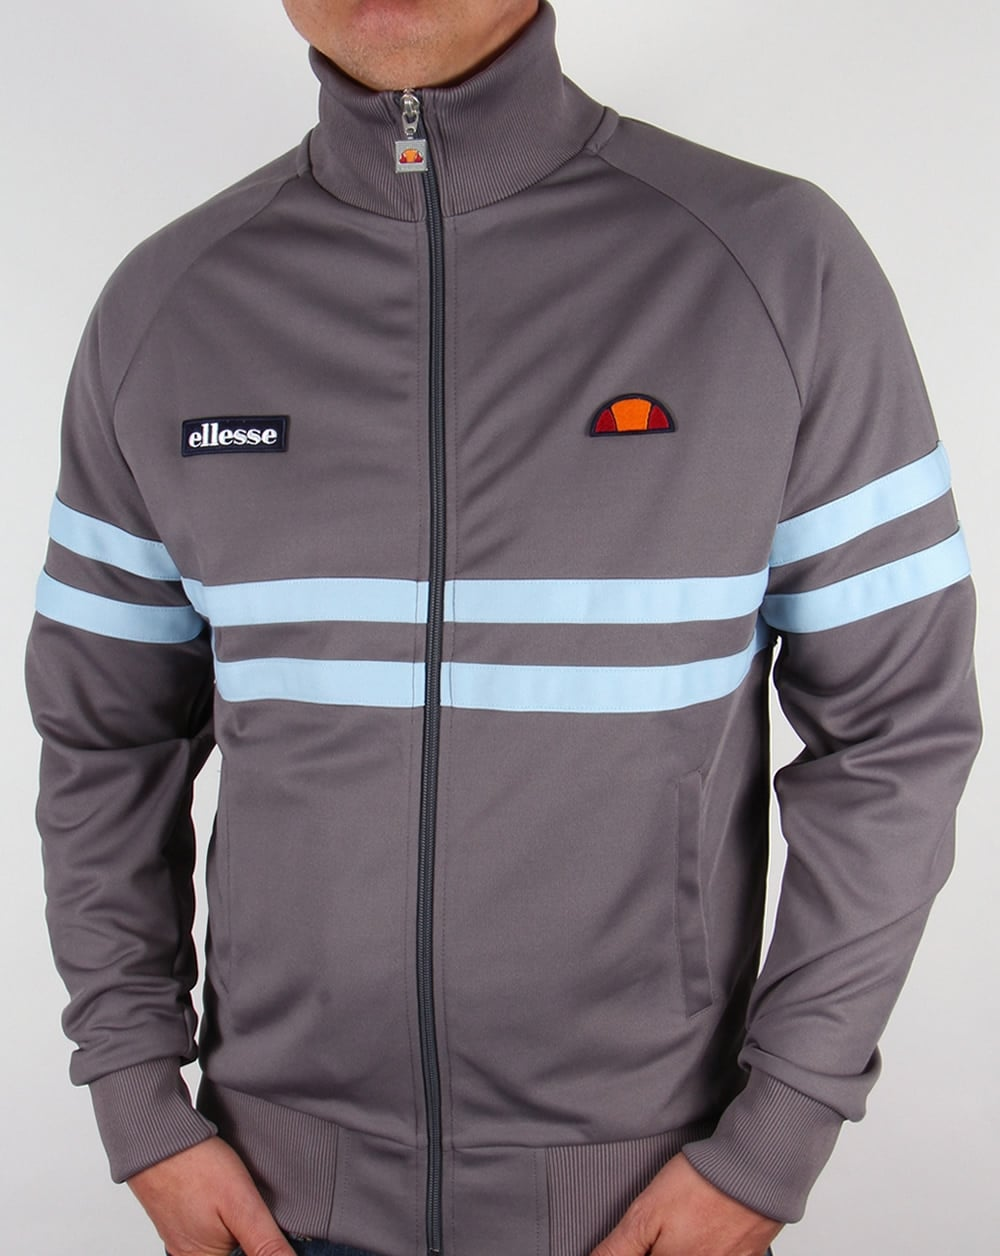 905400f596 Ellesse Rimini Track Top Silver Grey and Sky